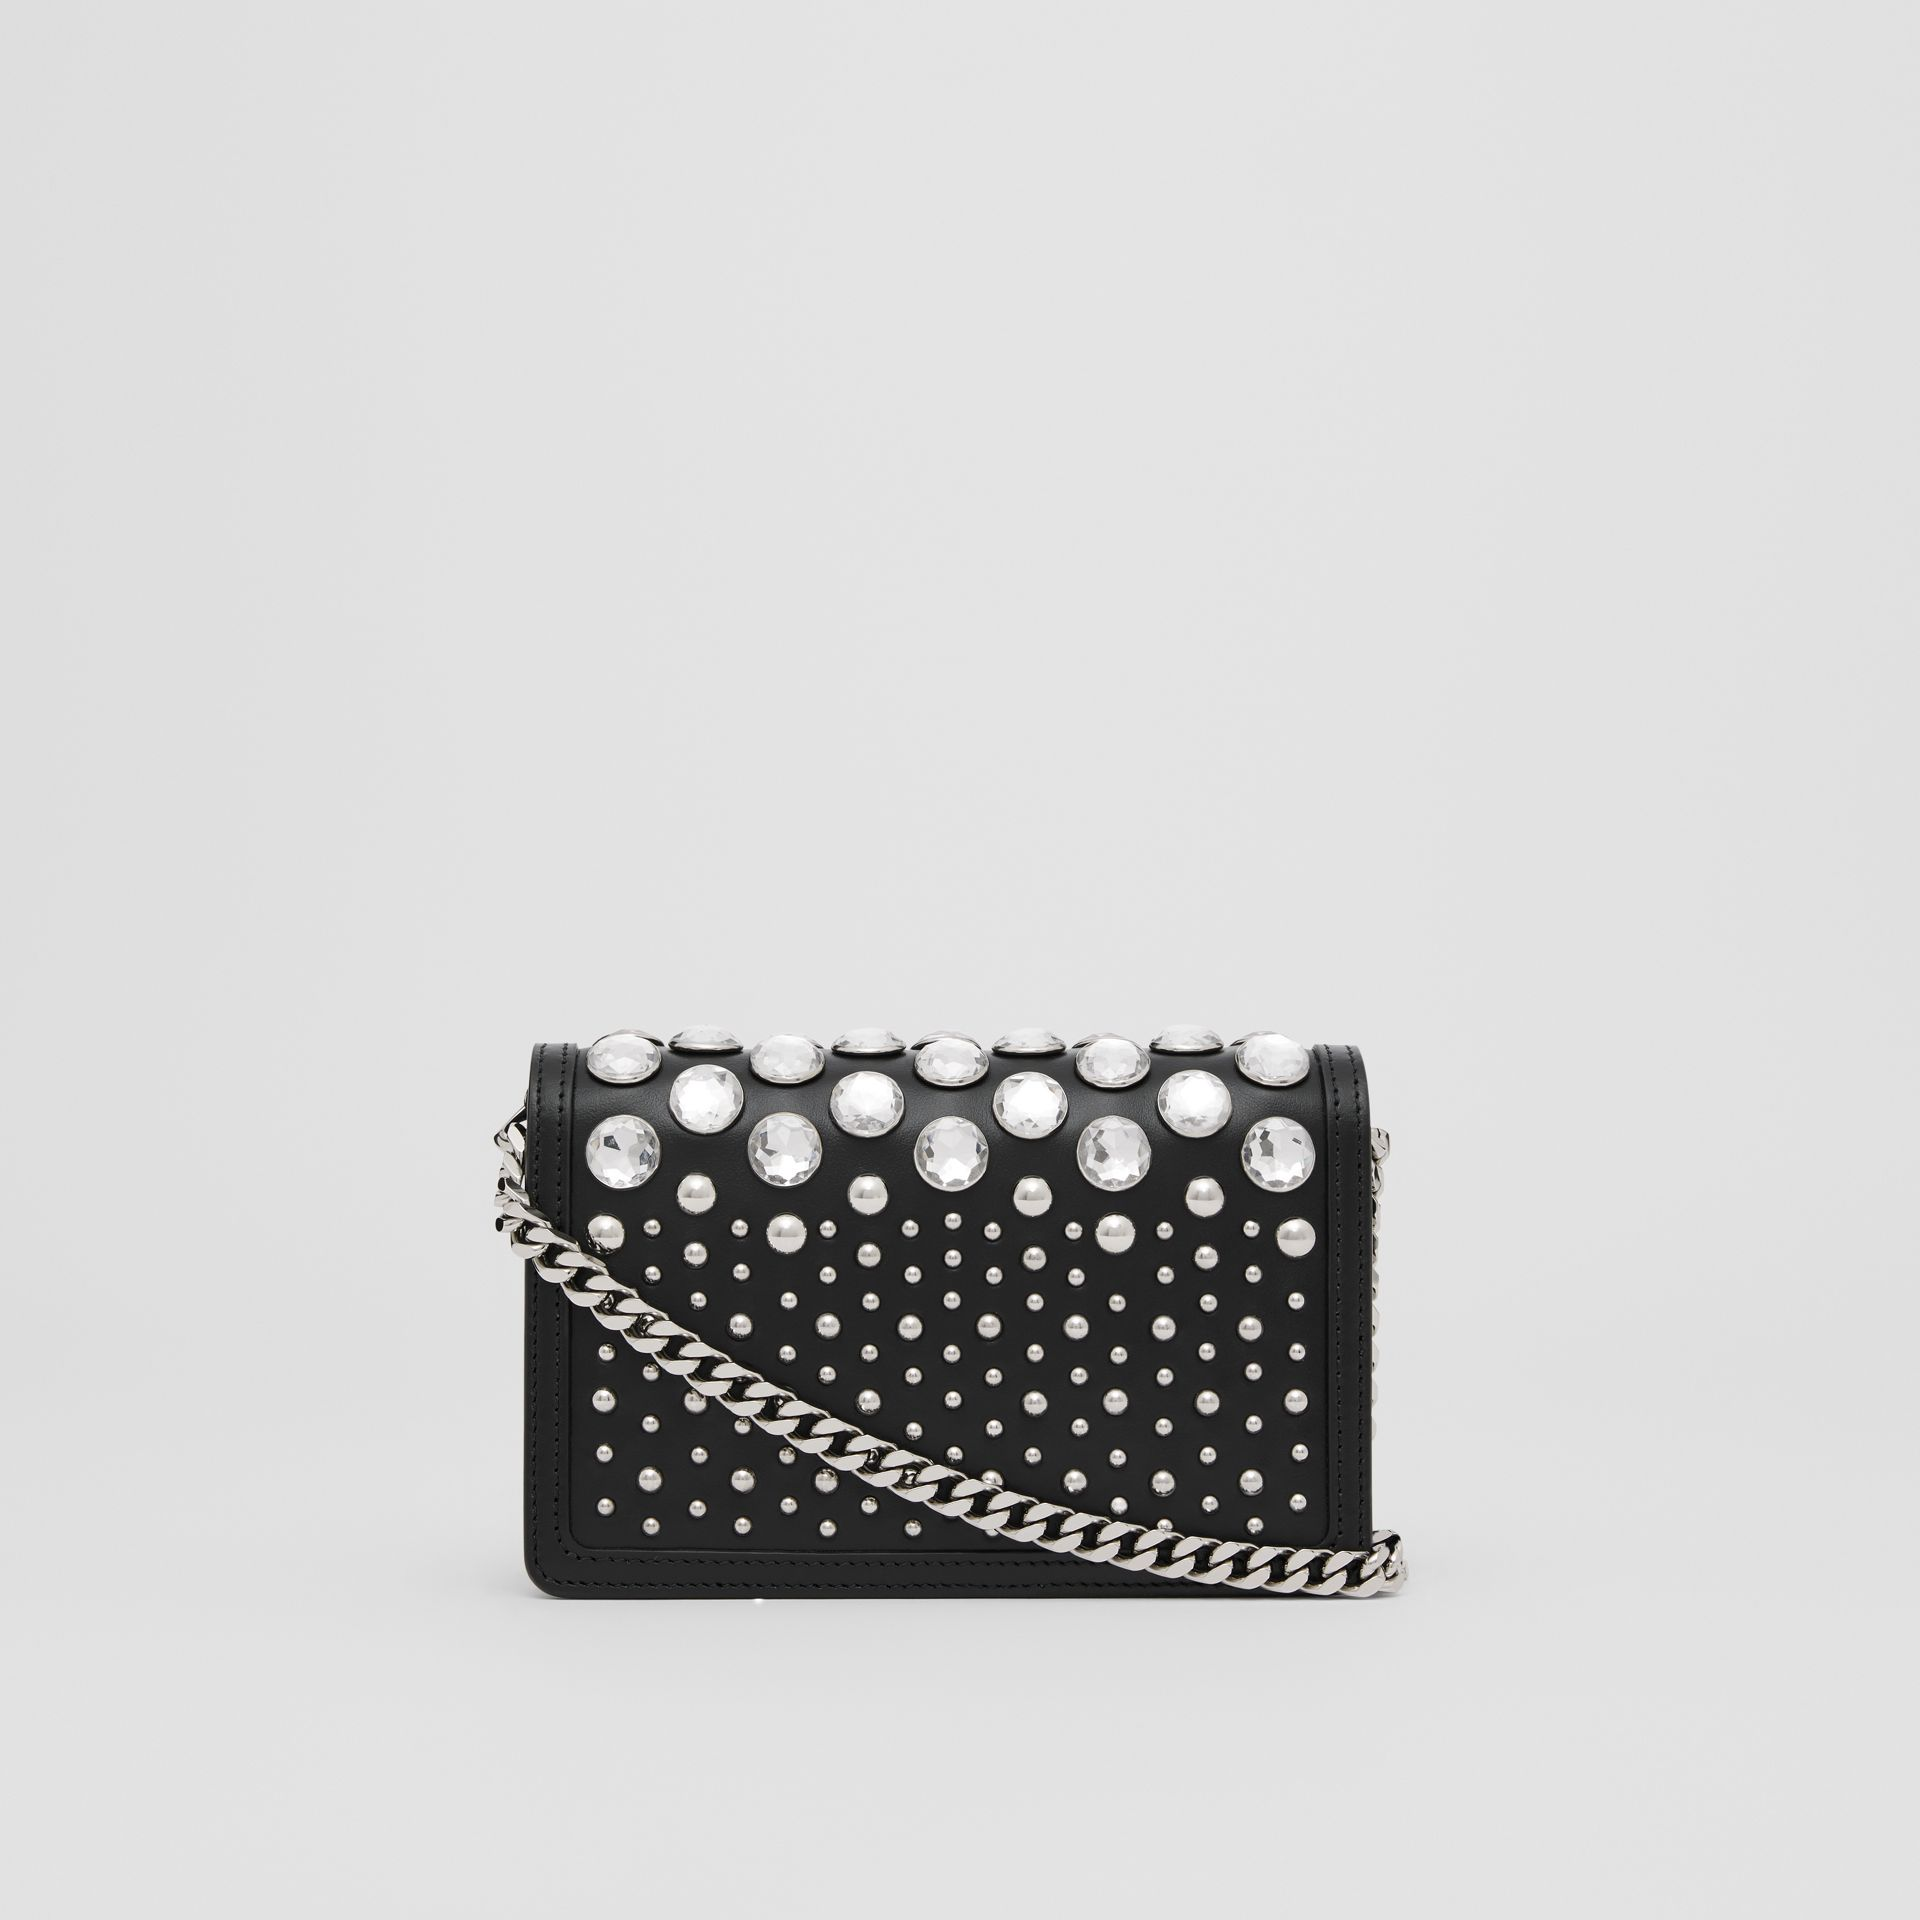 Mini Embellished Leather Shoulder Bag in Black - Women | Burberry - gallery image 7